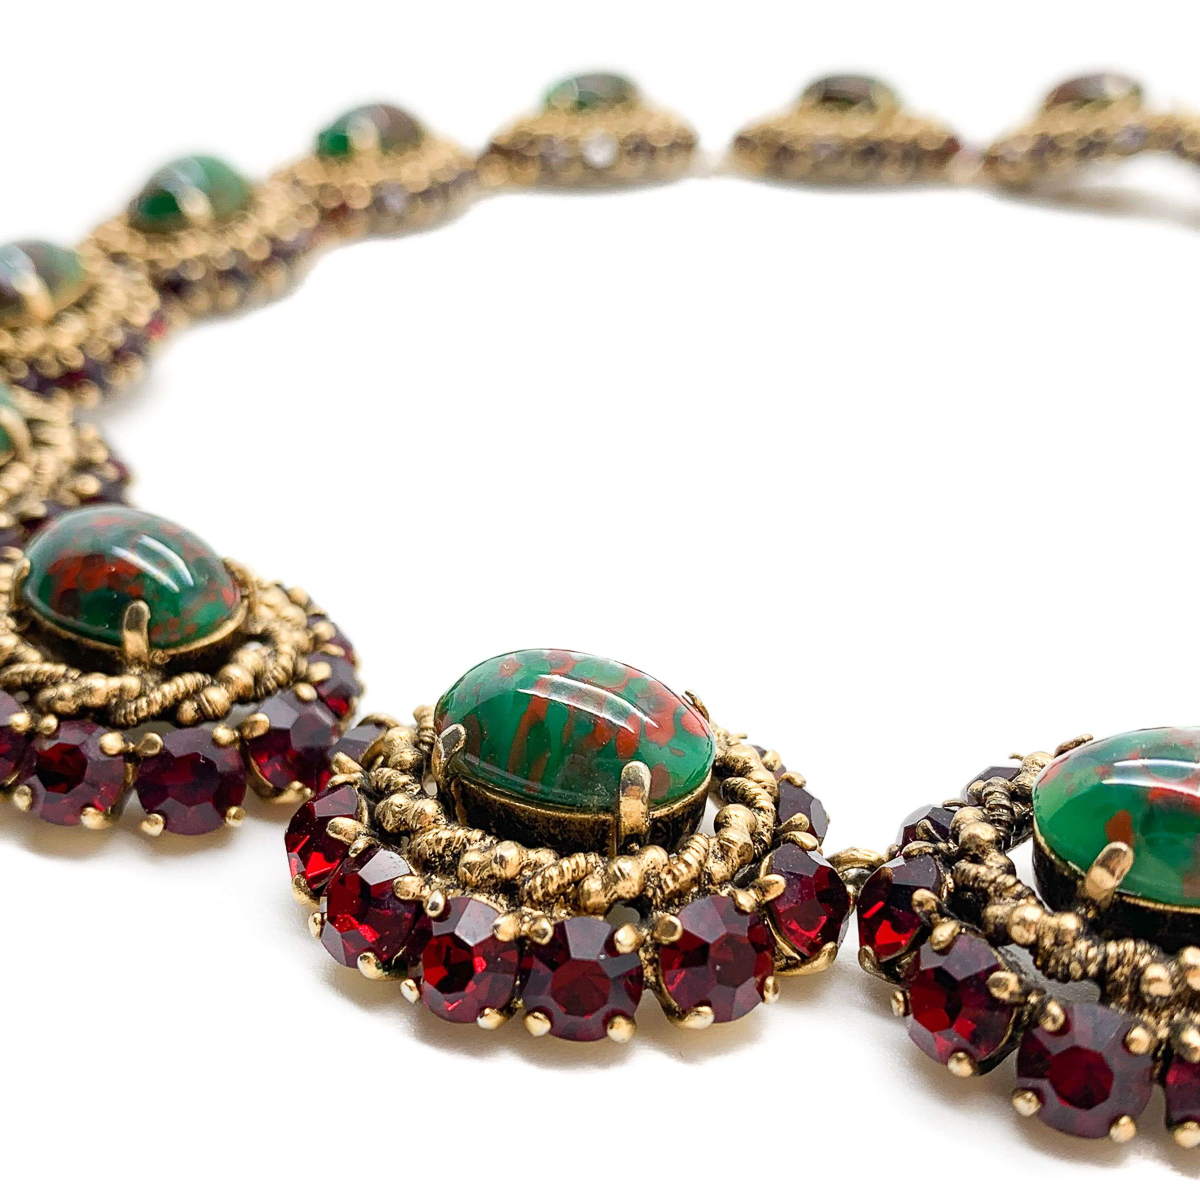 FT How To Spend It Vintage Jewellery Kate Finnigan Jennifer Gibson Jewellery